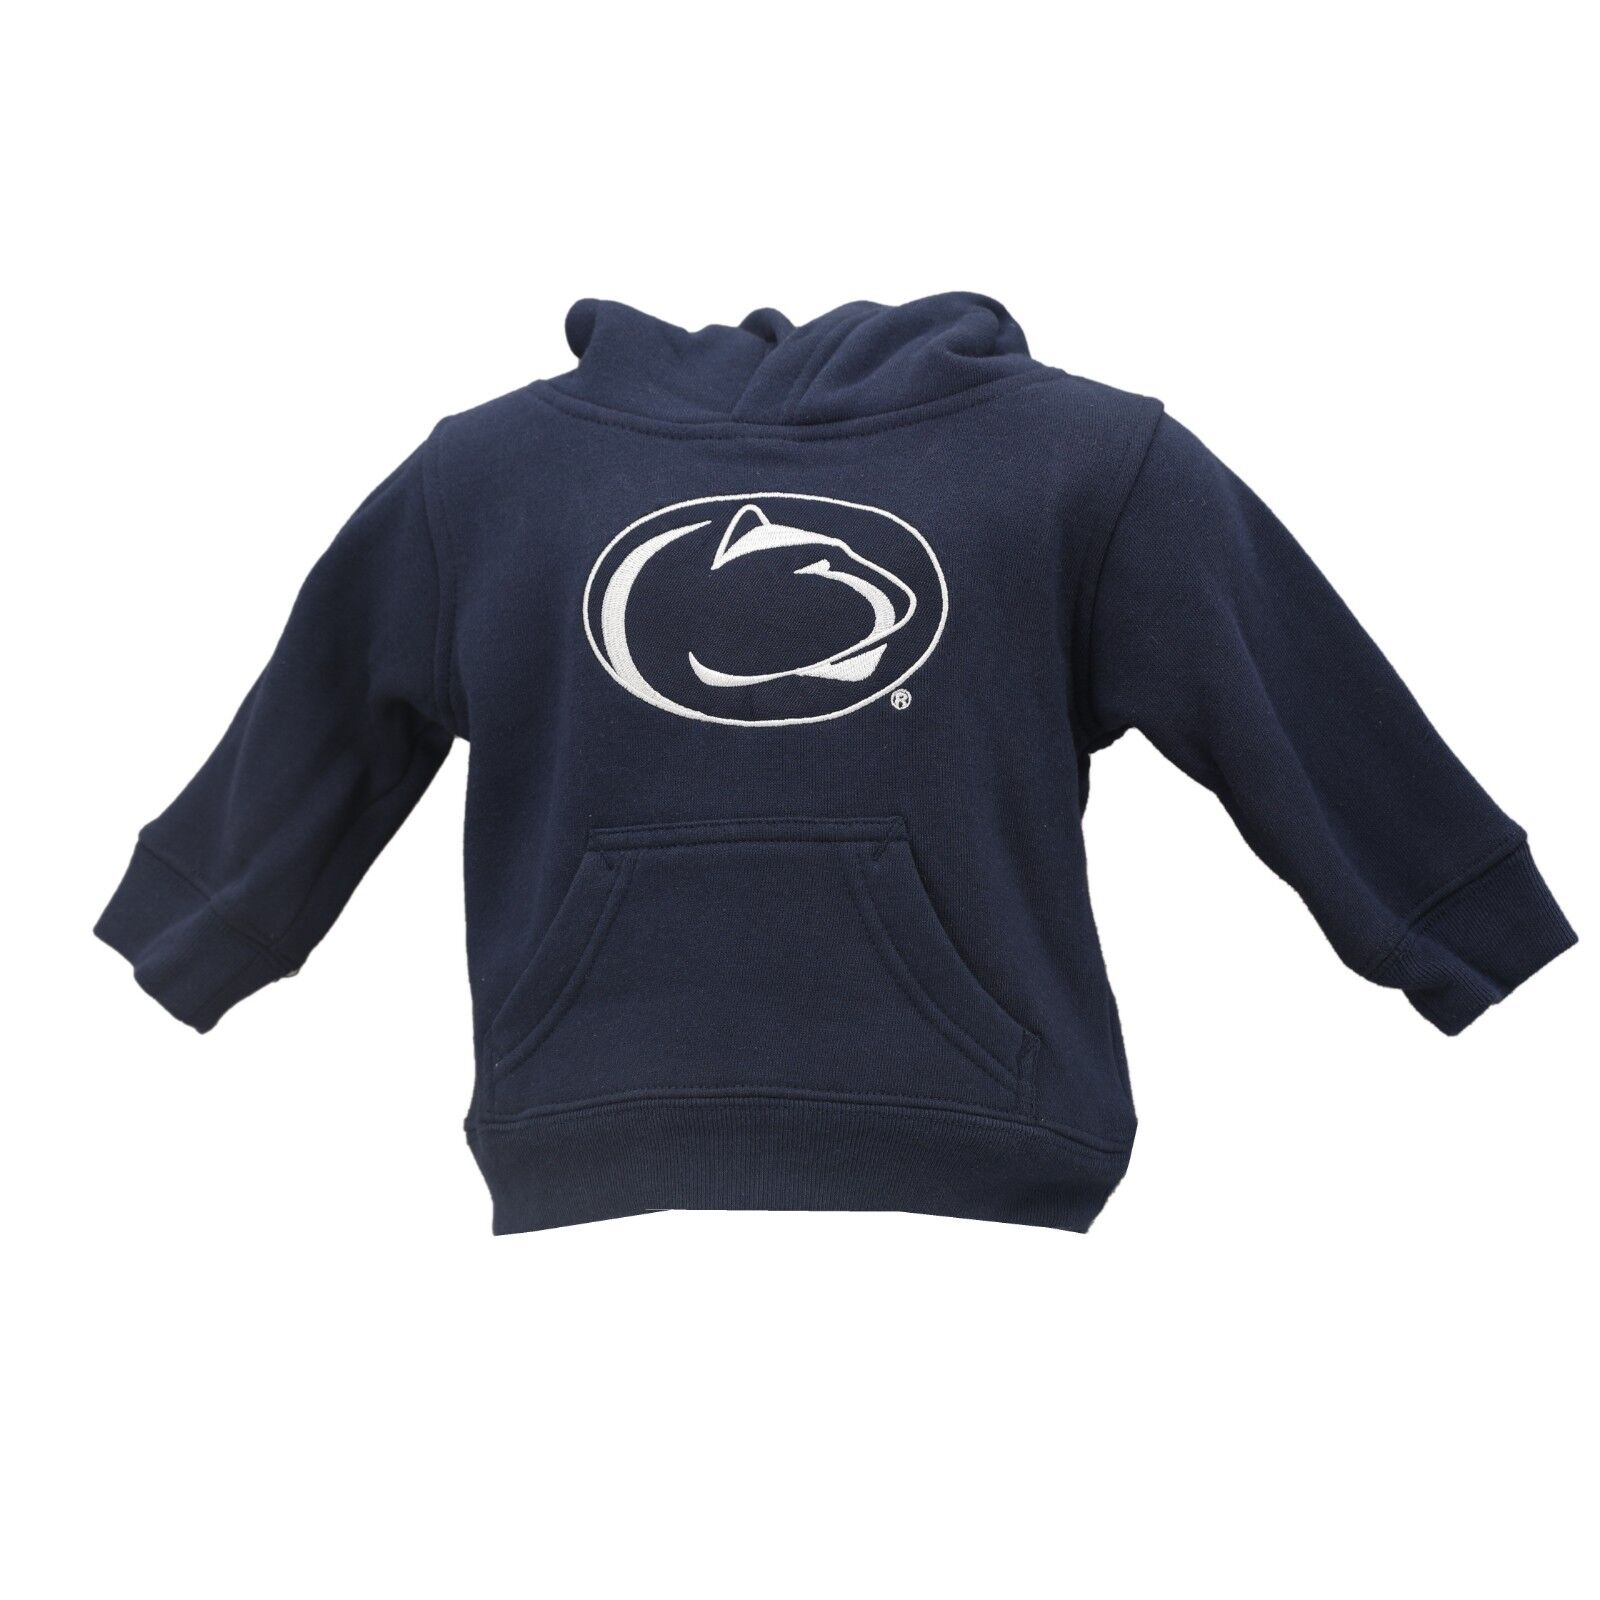 PENN STATE NITTANY LIONS 1//4 ZIP SWEATSHIRT NEW WITH TAGS!!!